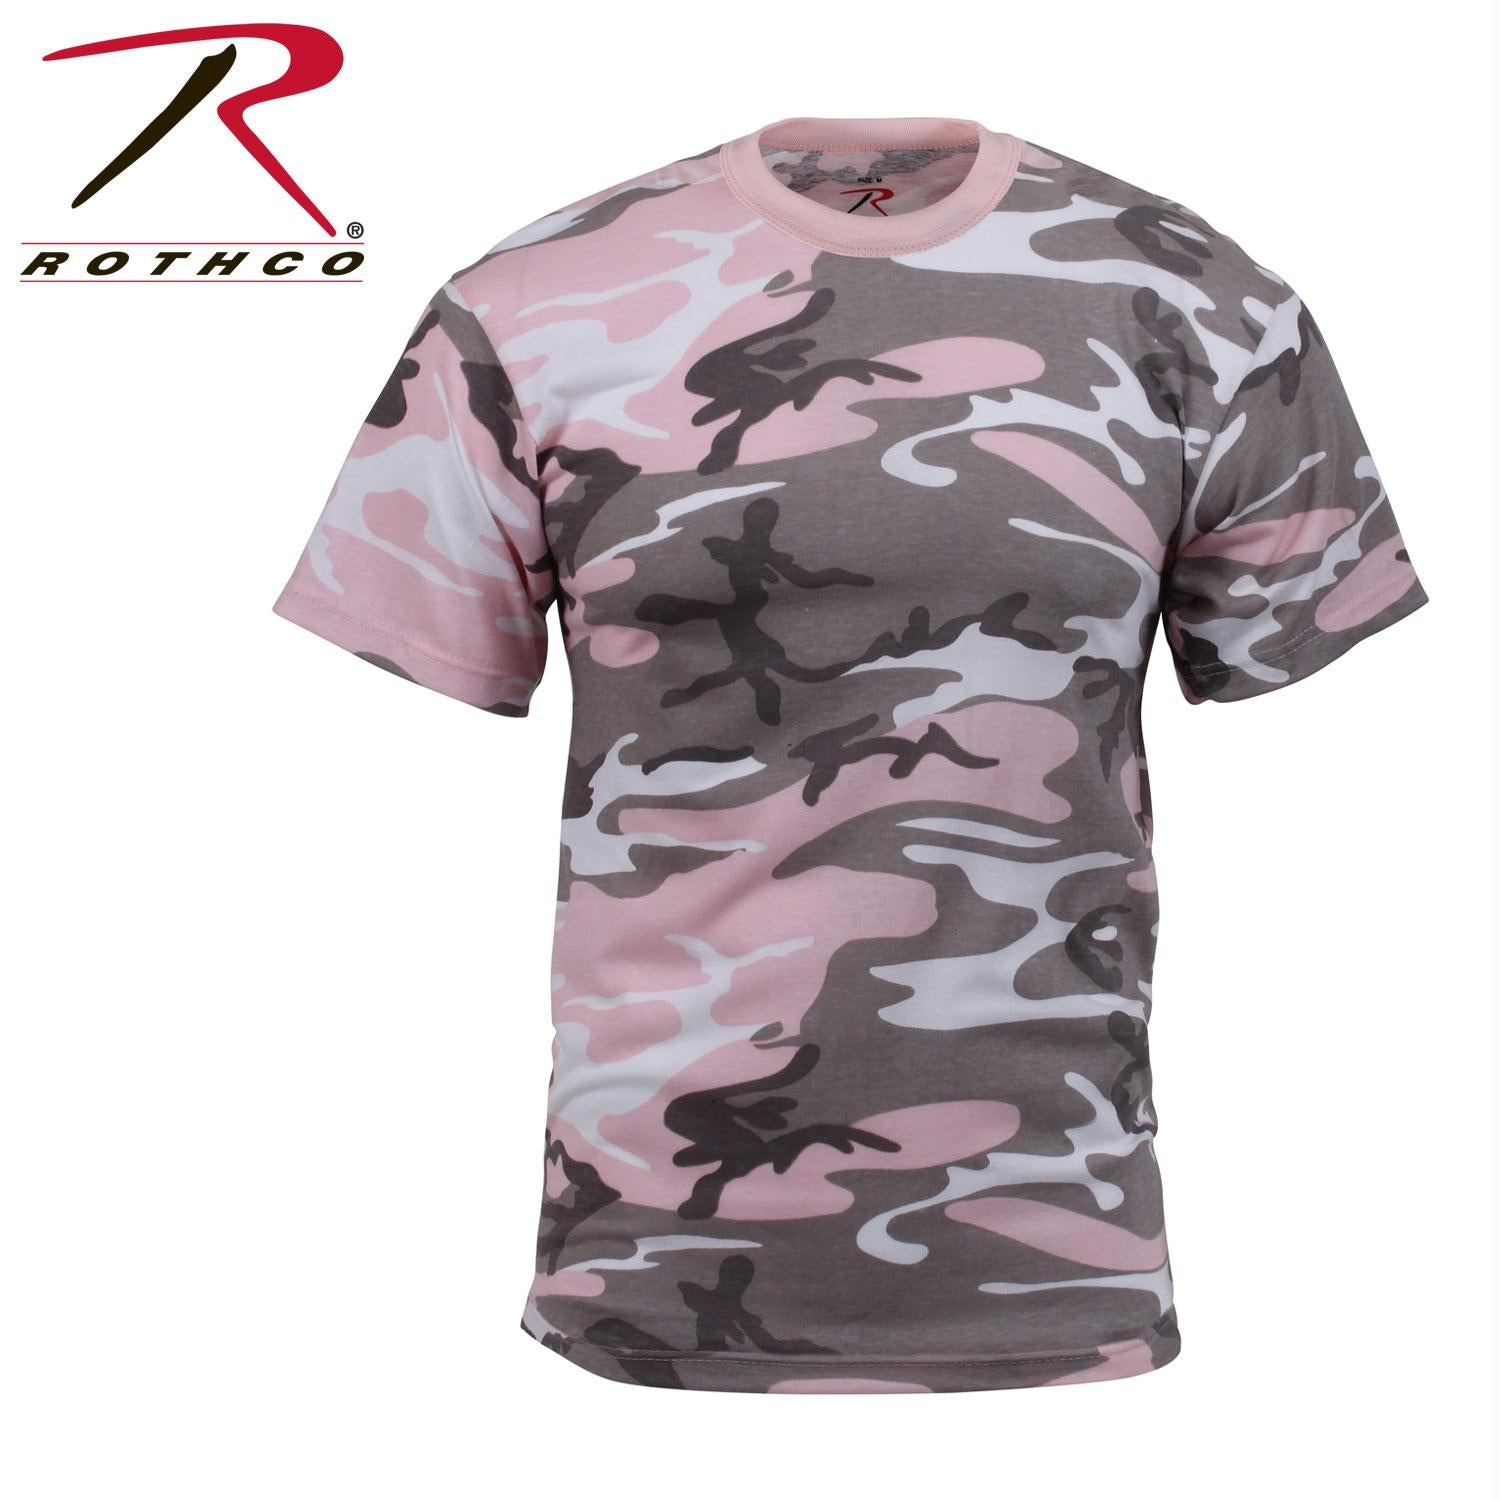 Rothco Colored Camo T-Shirts - Subdued Pink Camo / M